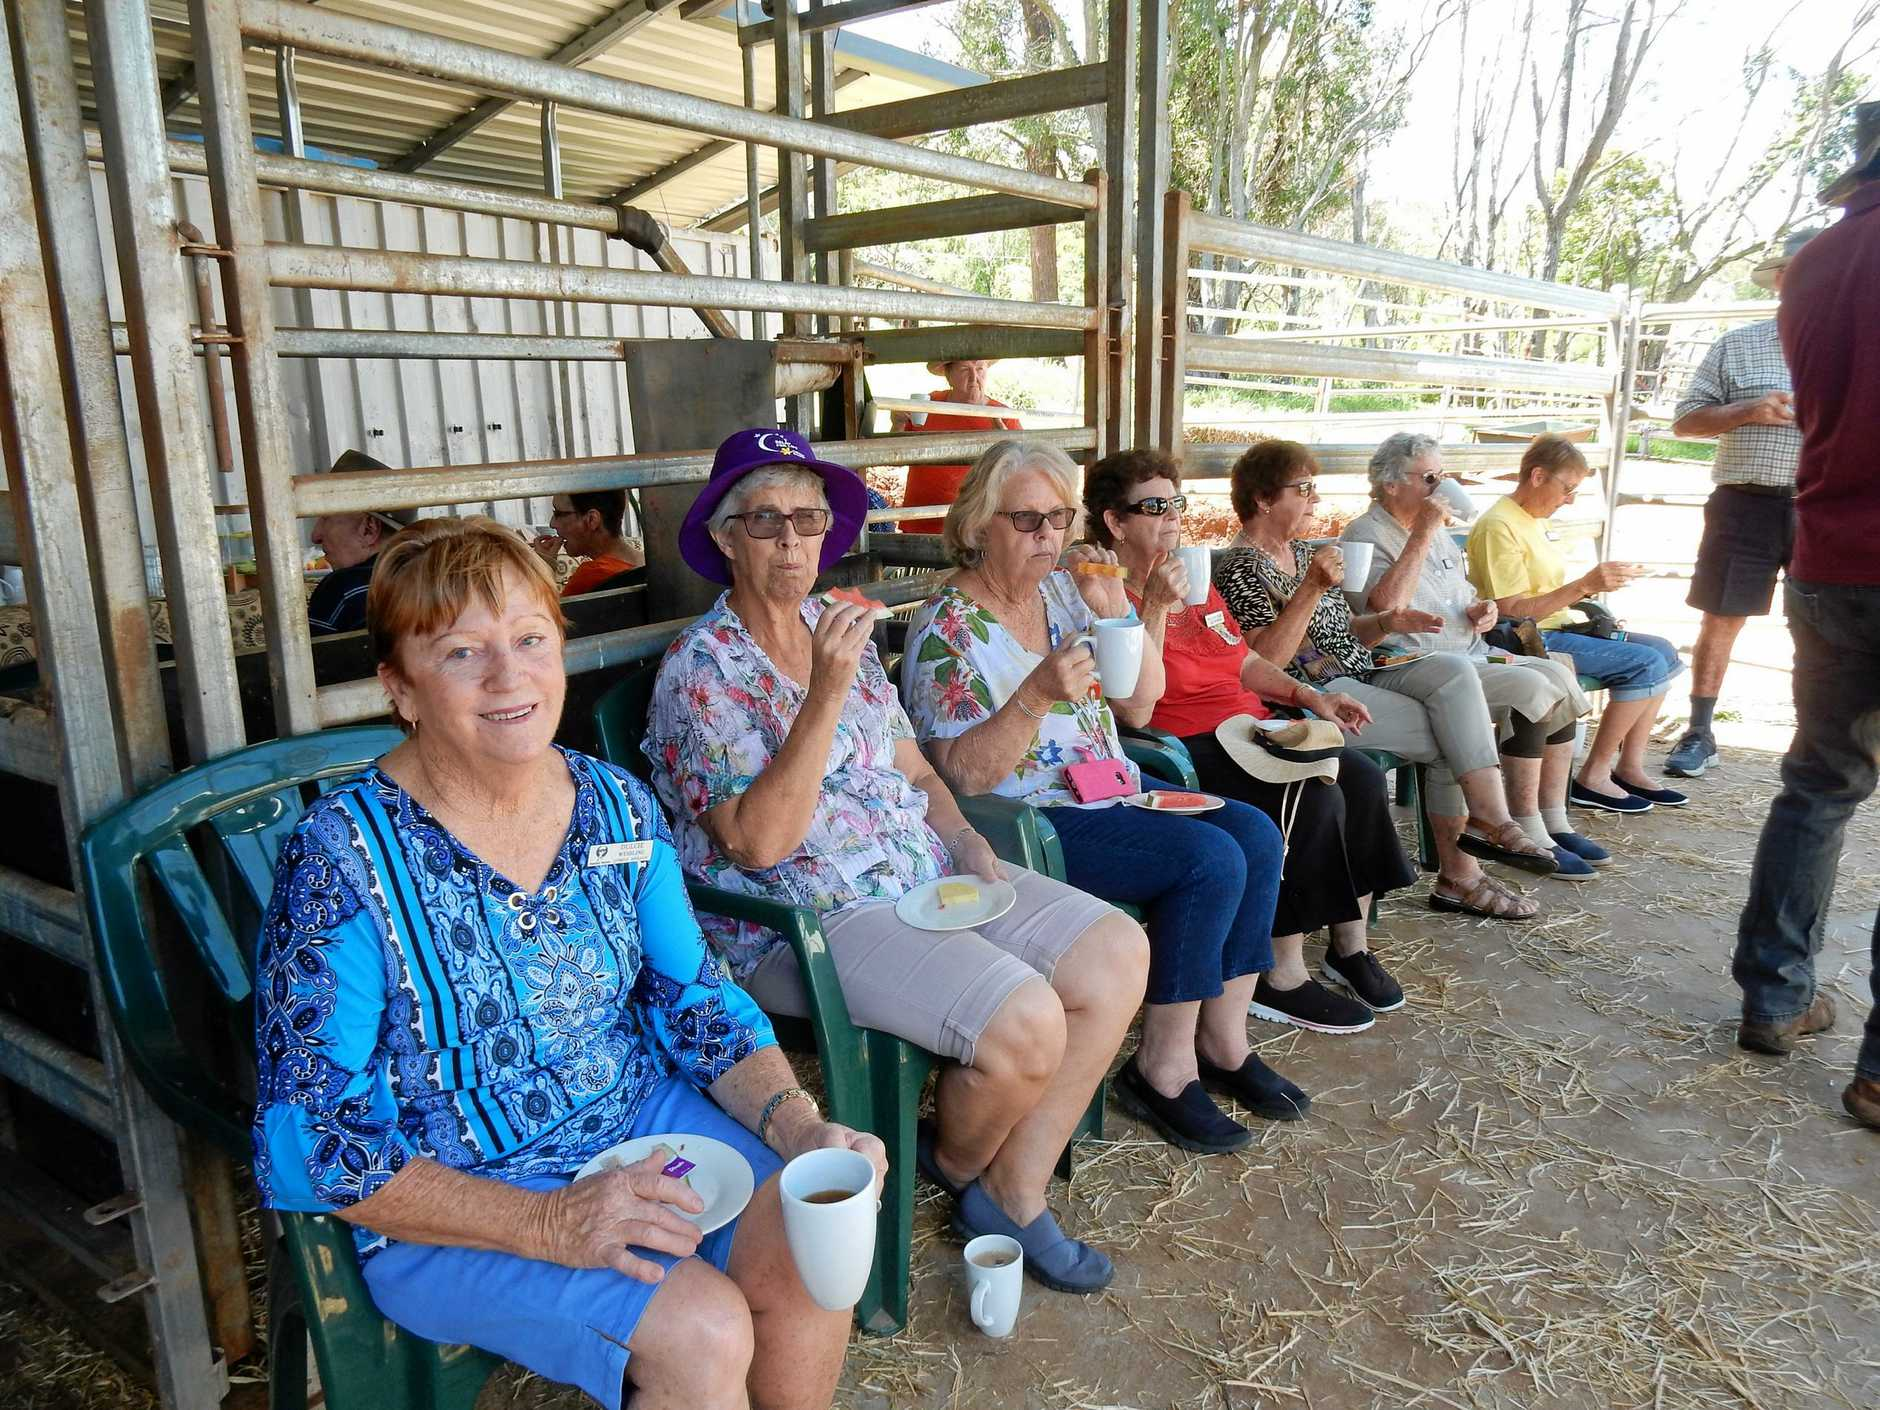 Gympie National Seniors members enjoyed visiting Camelot Dairies at Scrubby Creek. After enjoying morning tea prepared by Cathy, they listened to an interesting talk by Melanie about the running of the camel dairy.